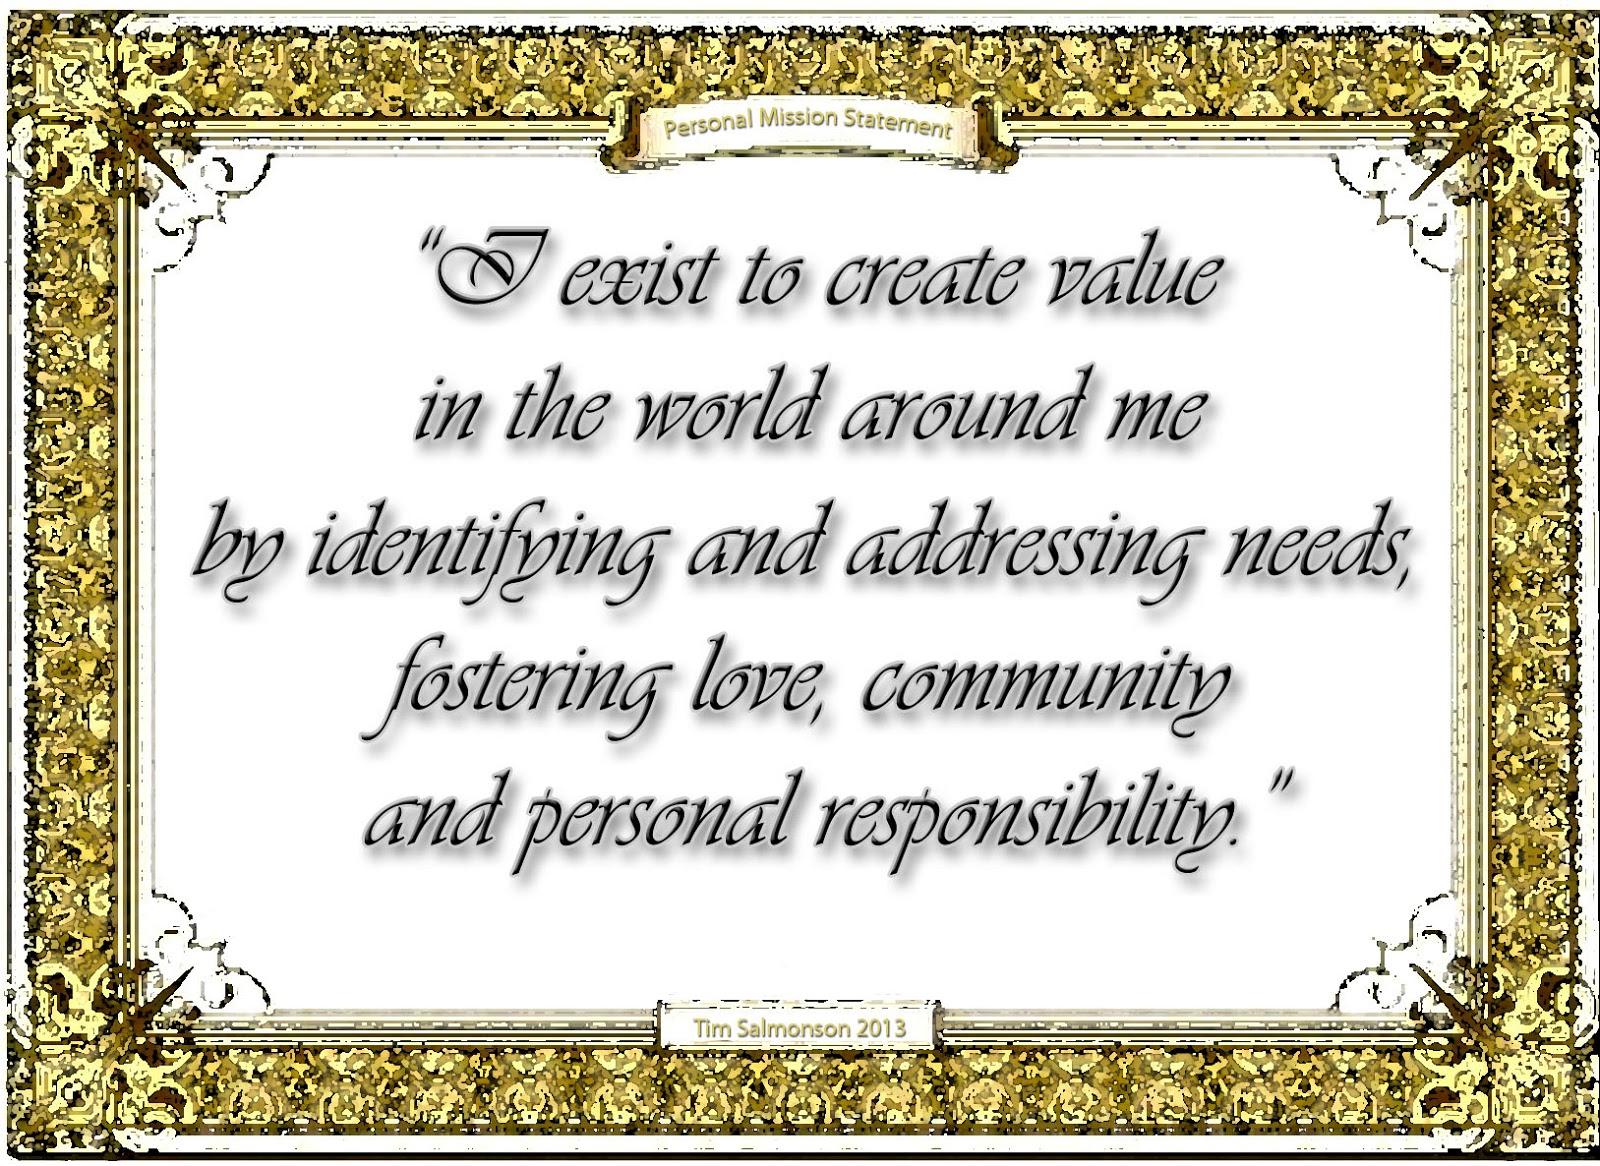 integr8ed life 2013 a personal mission statement is a powerful thing it helps guide your life makes it more integra8ed how often have we made seemingly small choices that